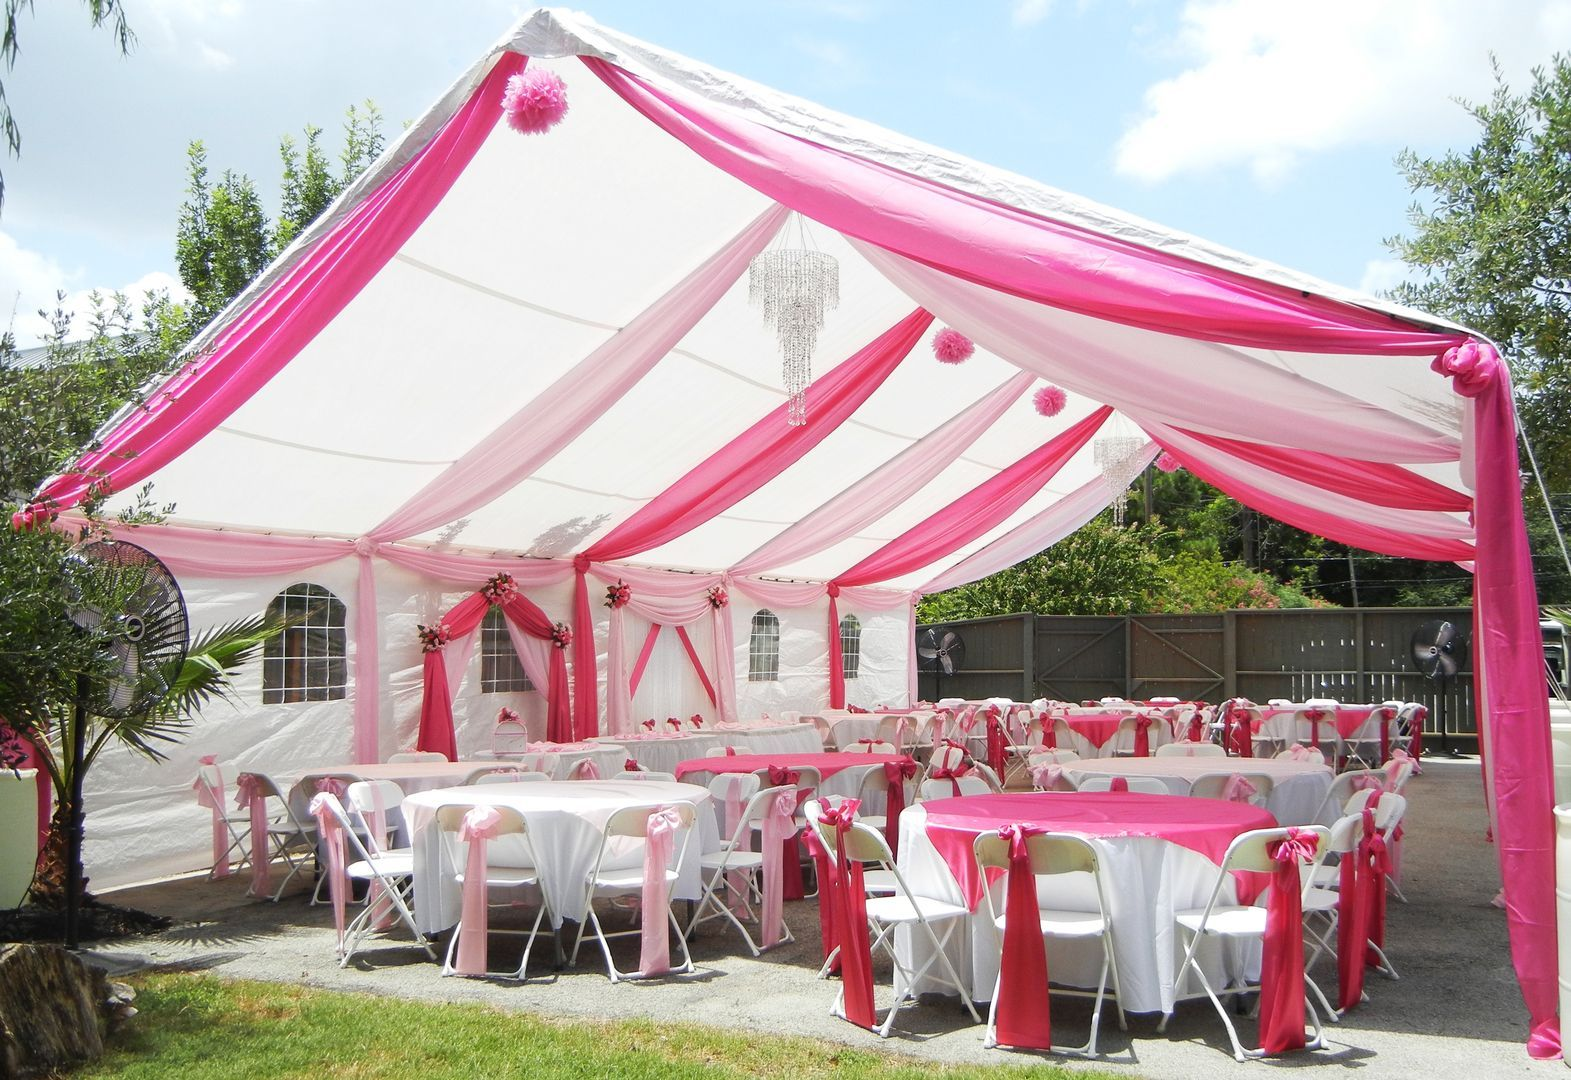 Party Rentals In 2020 Party Tent Decorations Wedding Canopy Decorations Tent Decorations